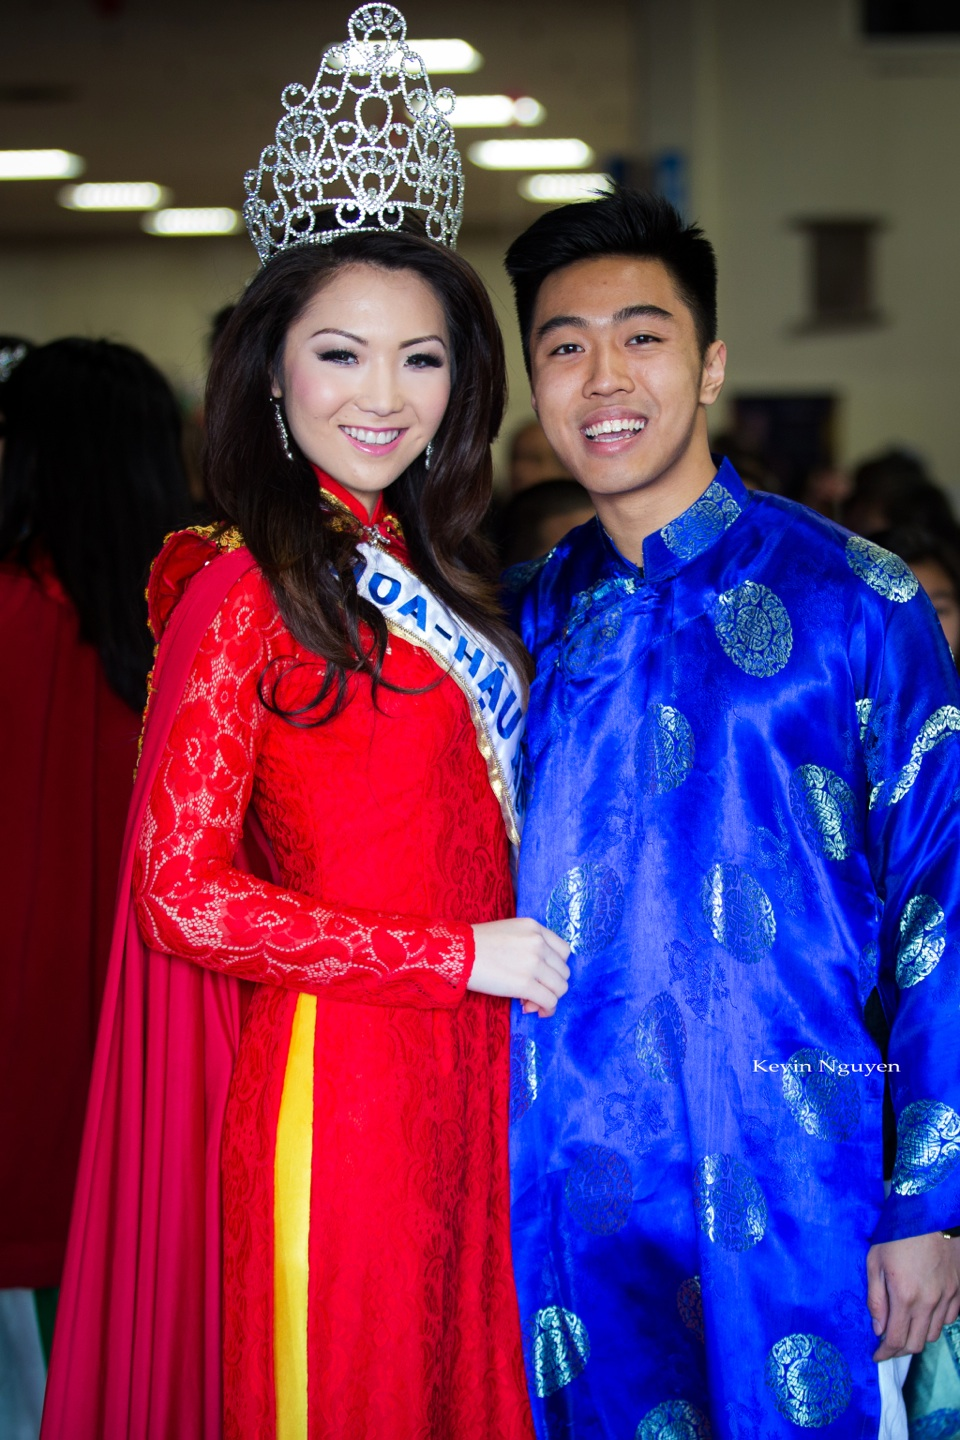 Tet 2014 at the Fairgrounds, San Jose, CA - Image 125